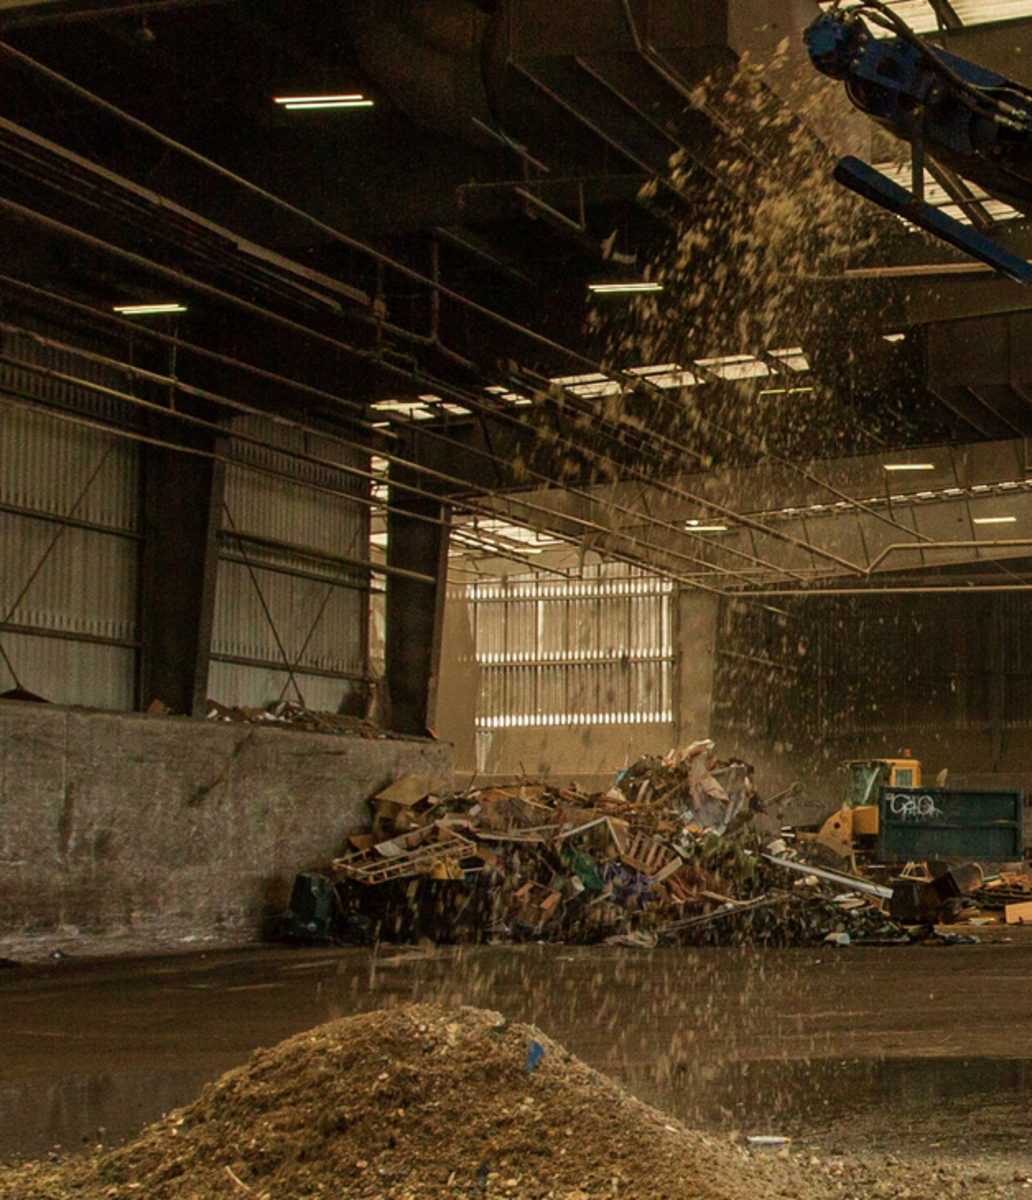 The recycled materials were used as filler in concrete.